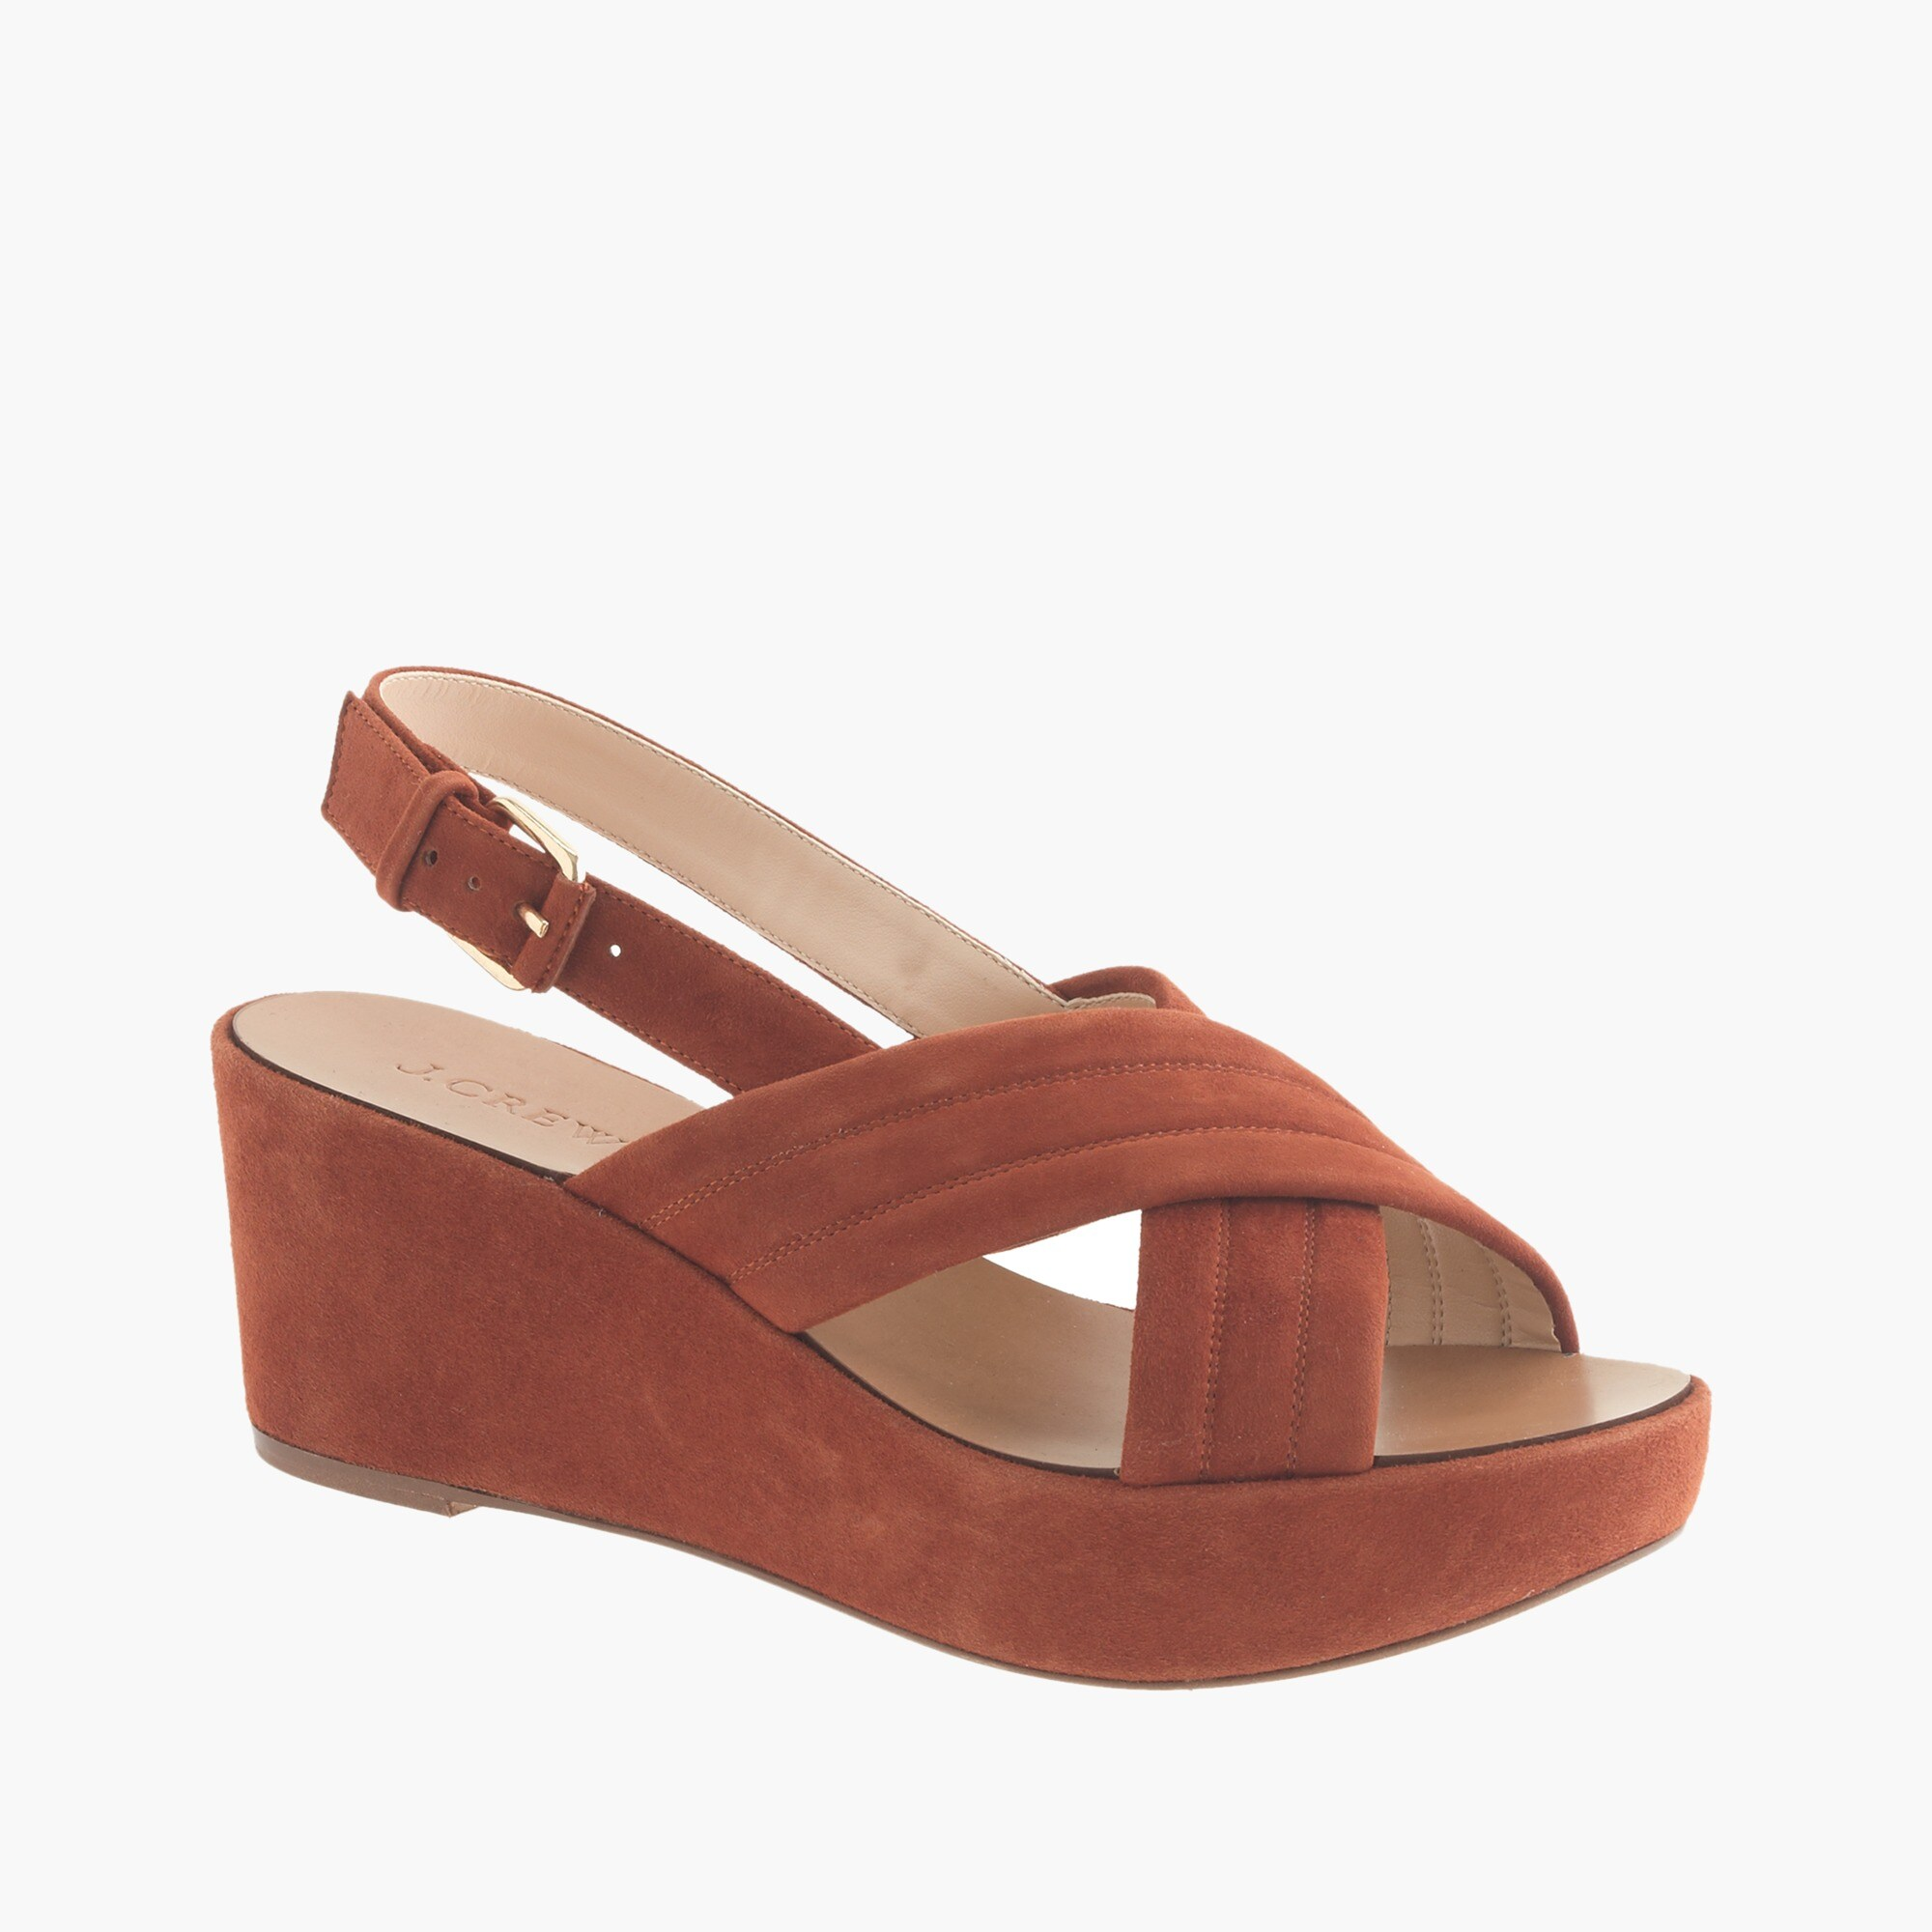 Image 1 for Marcie suede wedges